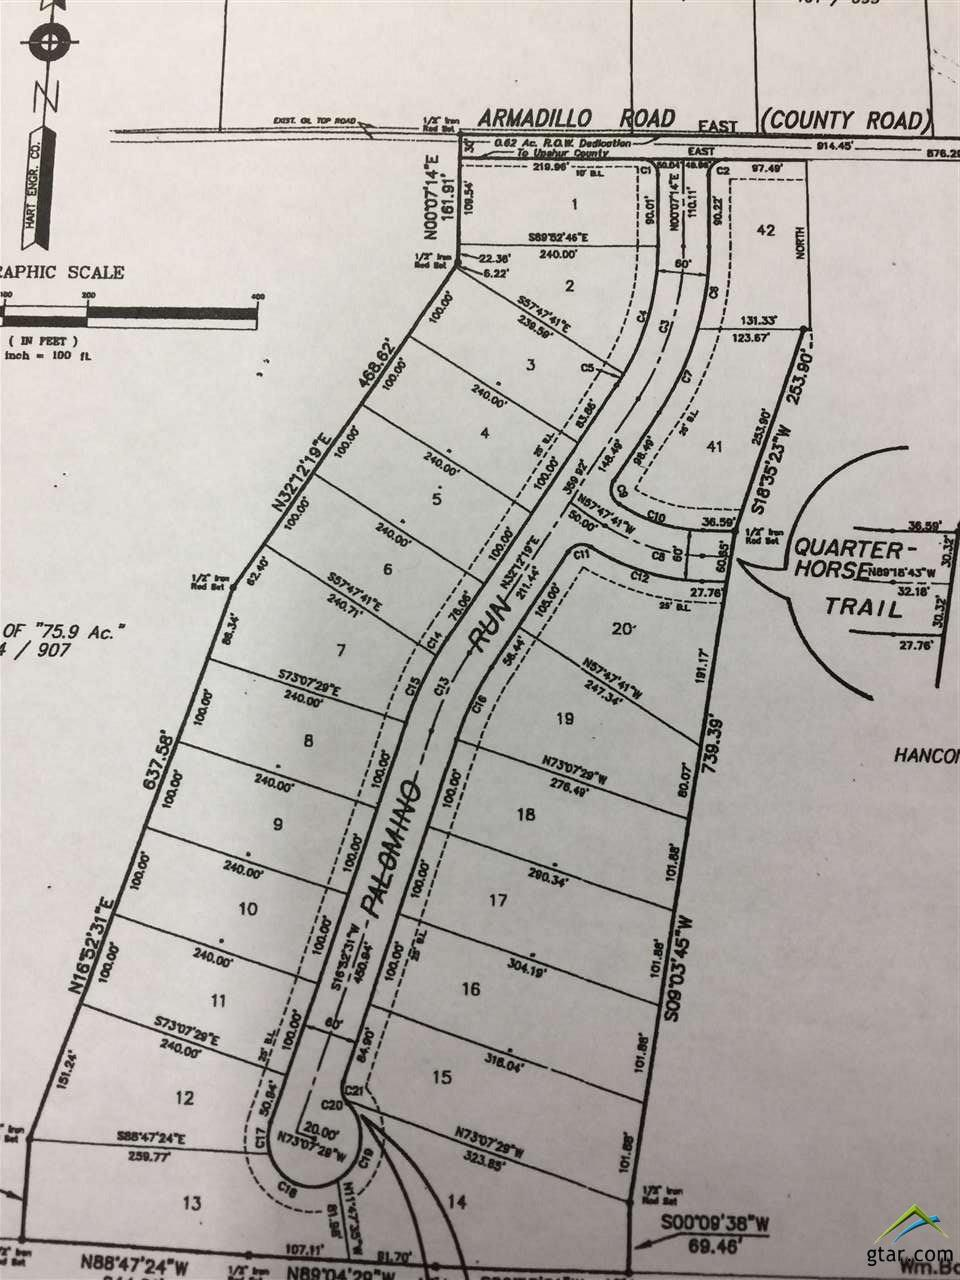 TBD Armadillo Road - Lot 19 - Meadow Springs Subdivision - Photo 1